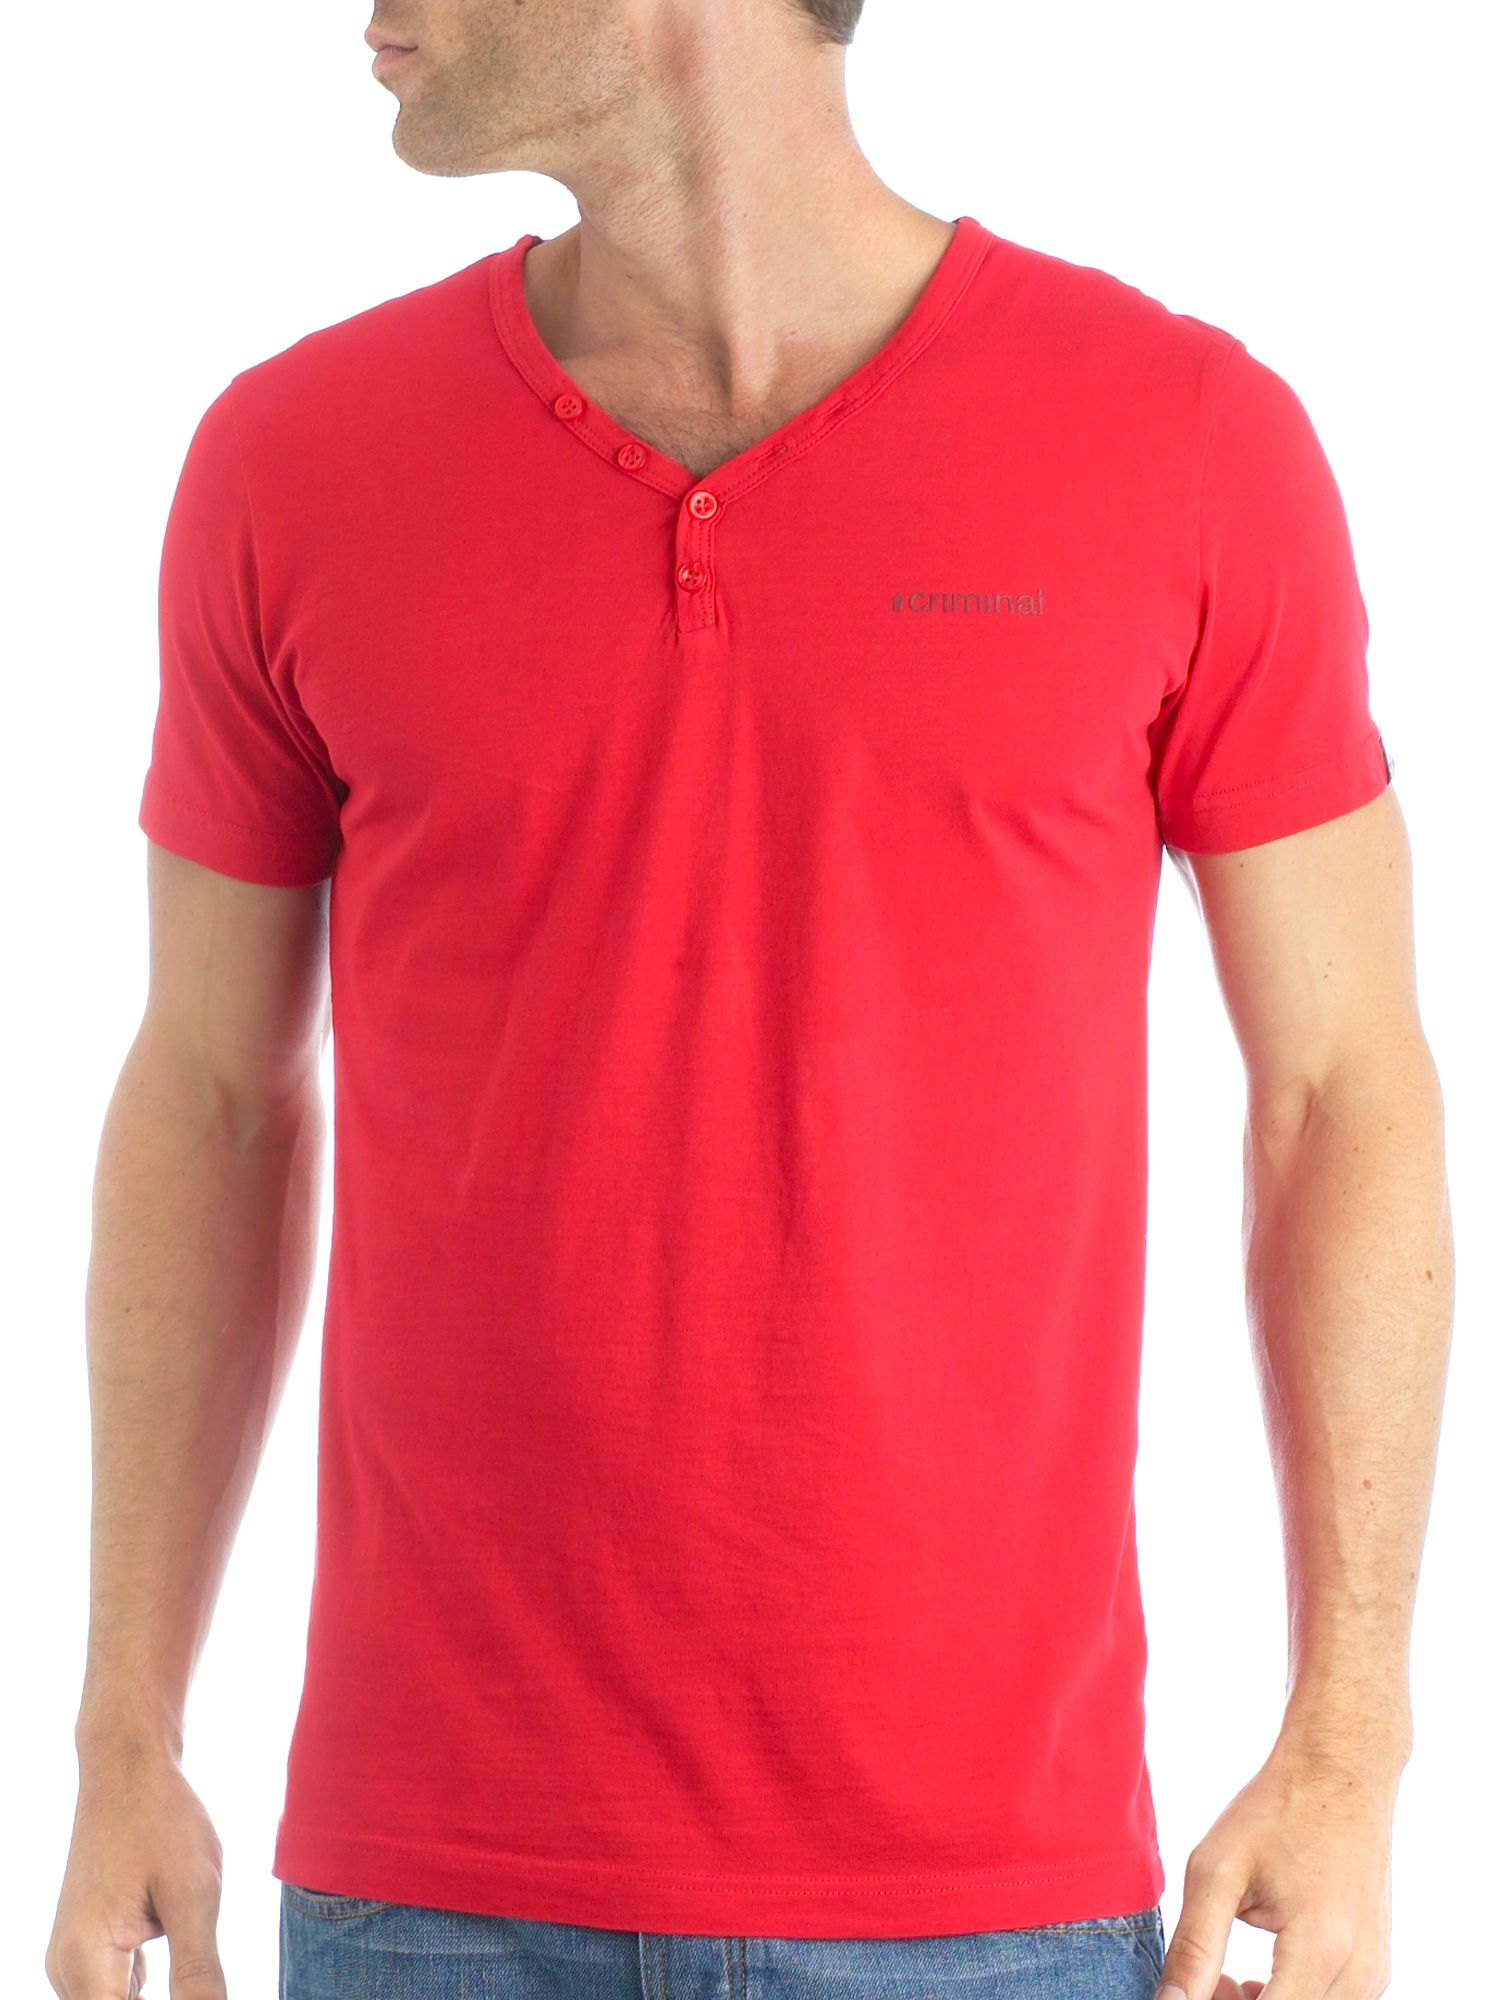 Criminal Short sleeved Y-Neck tee product image